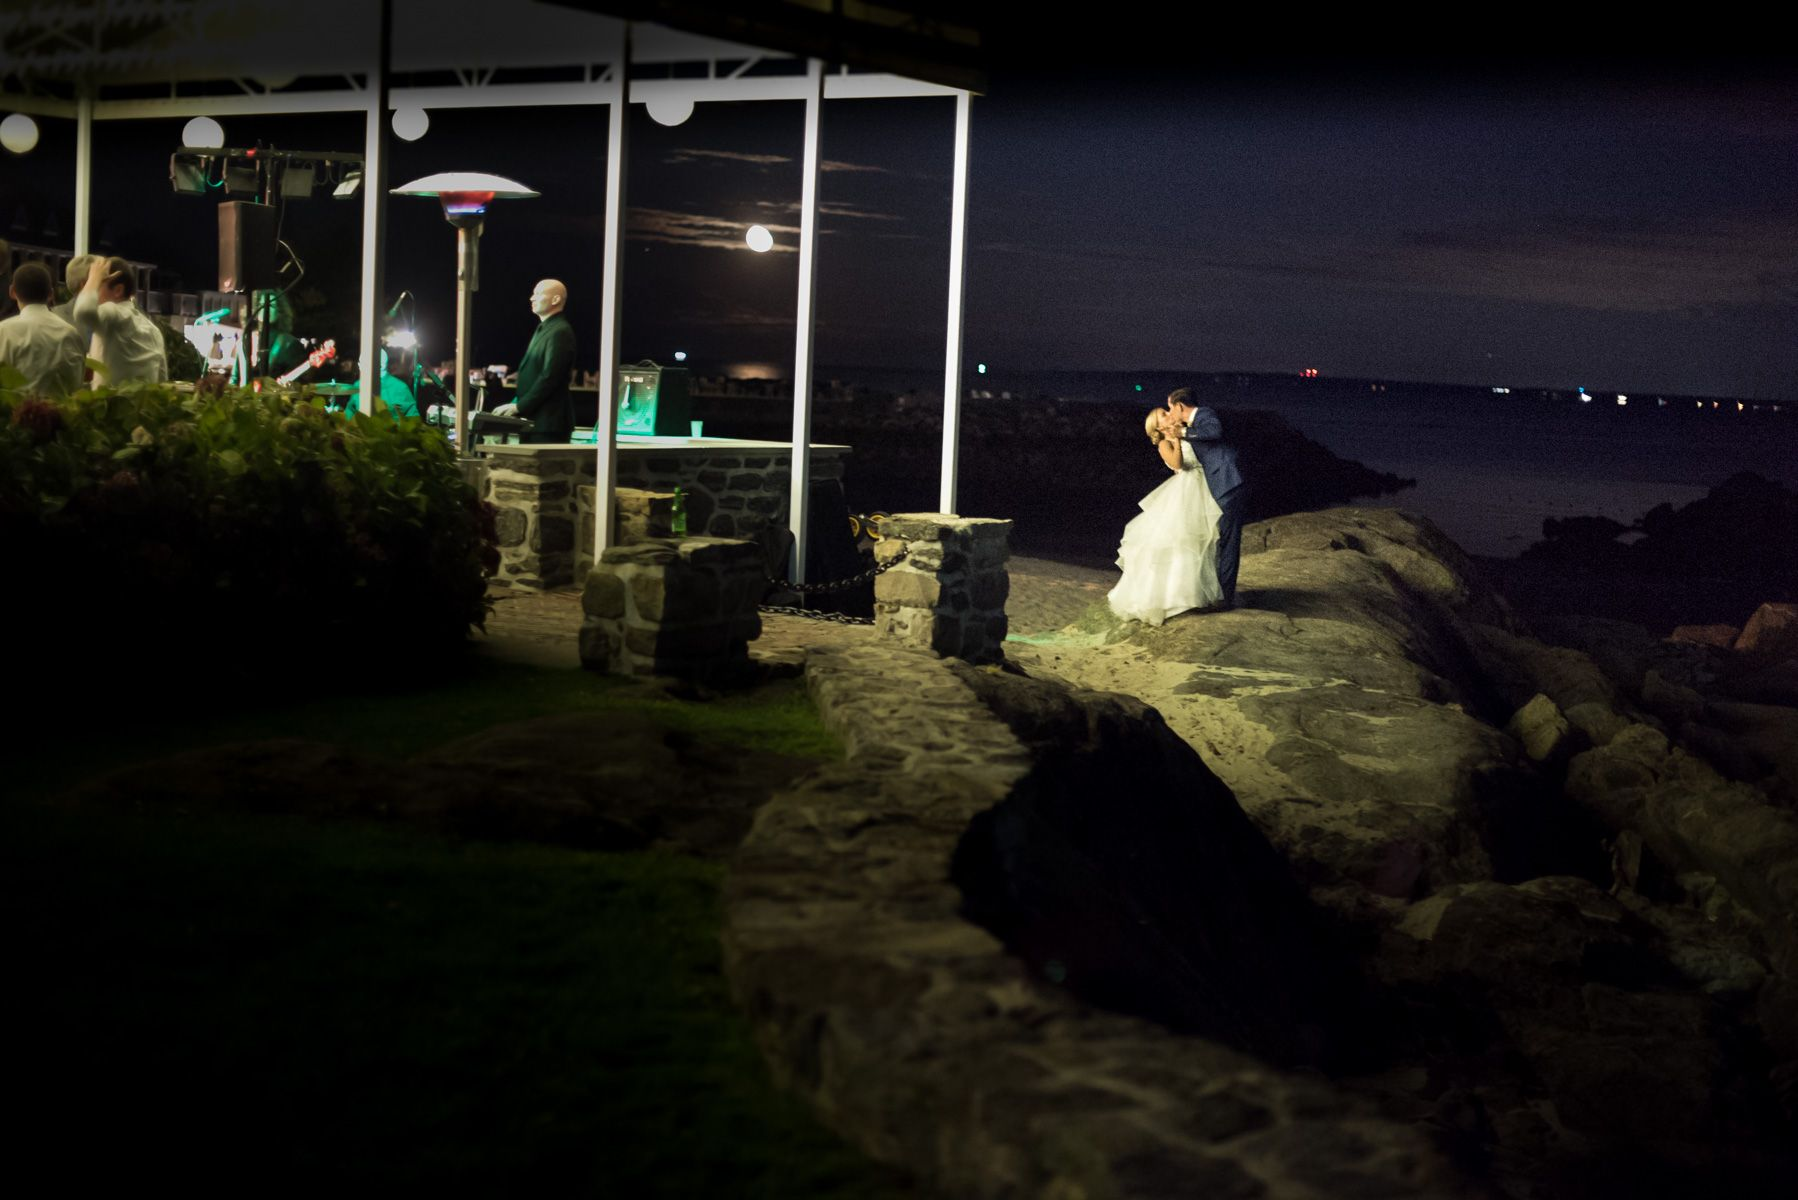 New York Bride and Groom Dancing Under The Stars